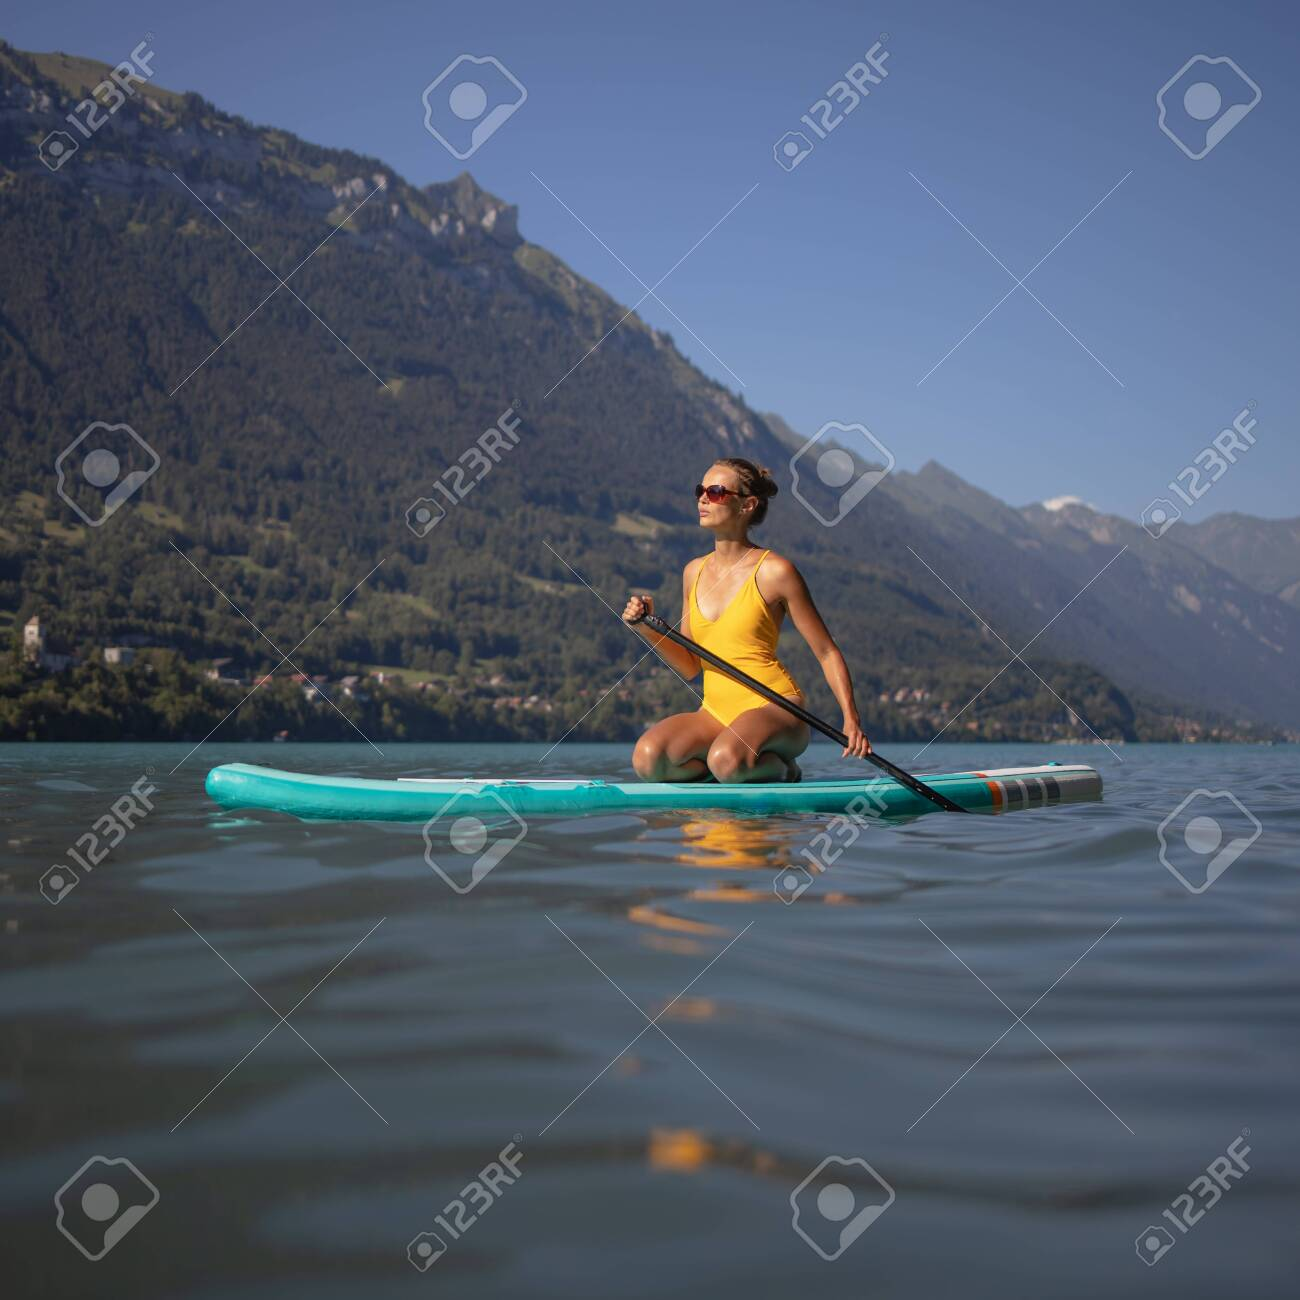 Pretty, young woman paddling on a paddle board on a lake, enjoying a lovely summer day - 141971261